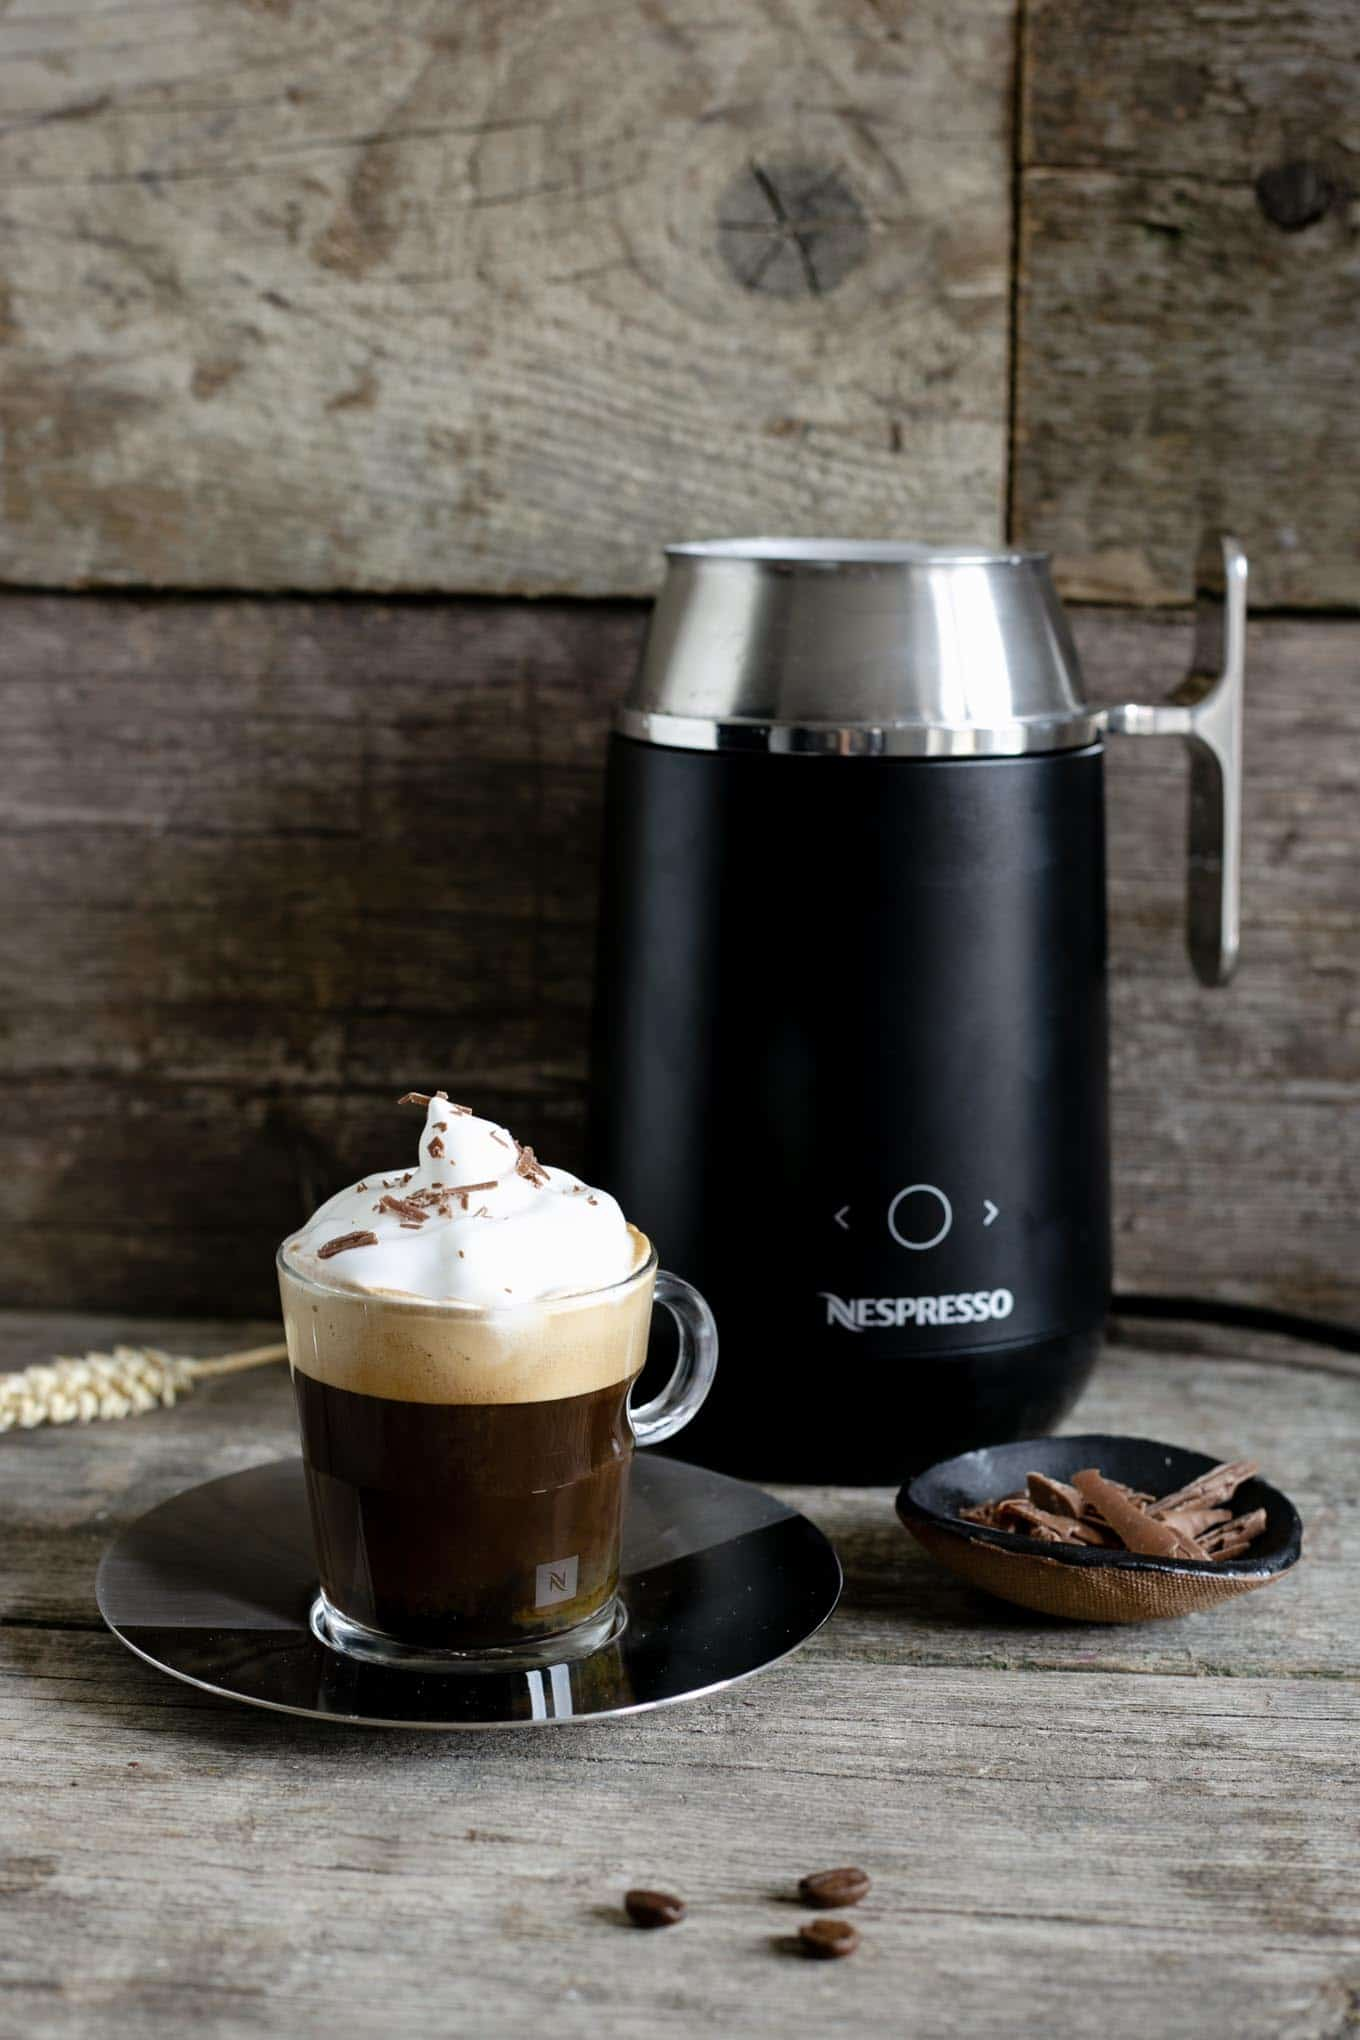 Cafe Viennois made with Nespresso Barista coffee and milk recipe maker #coffeelover #coffeerecipe | via @annabanana.co